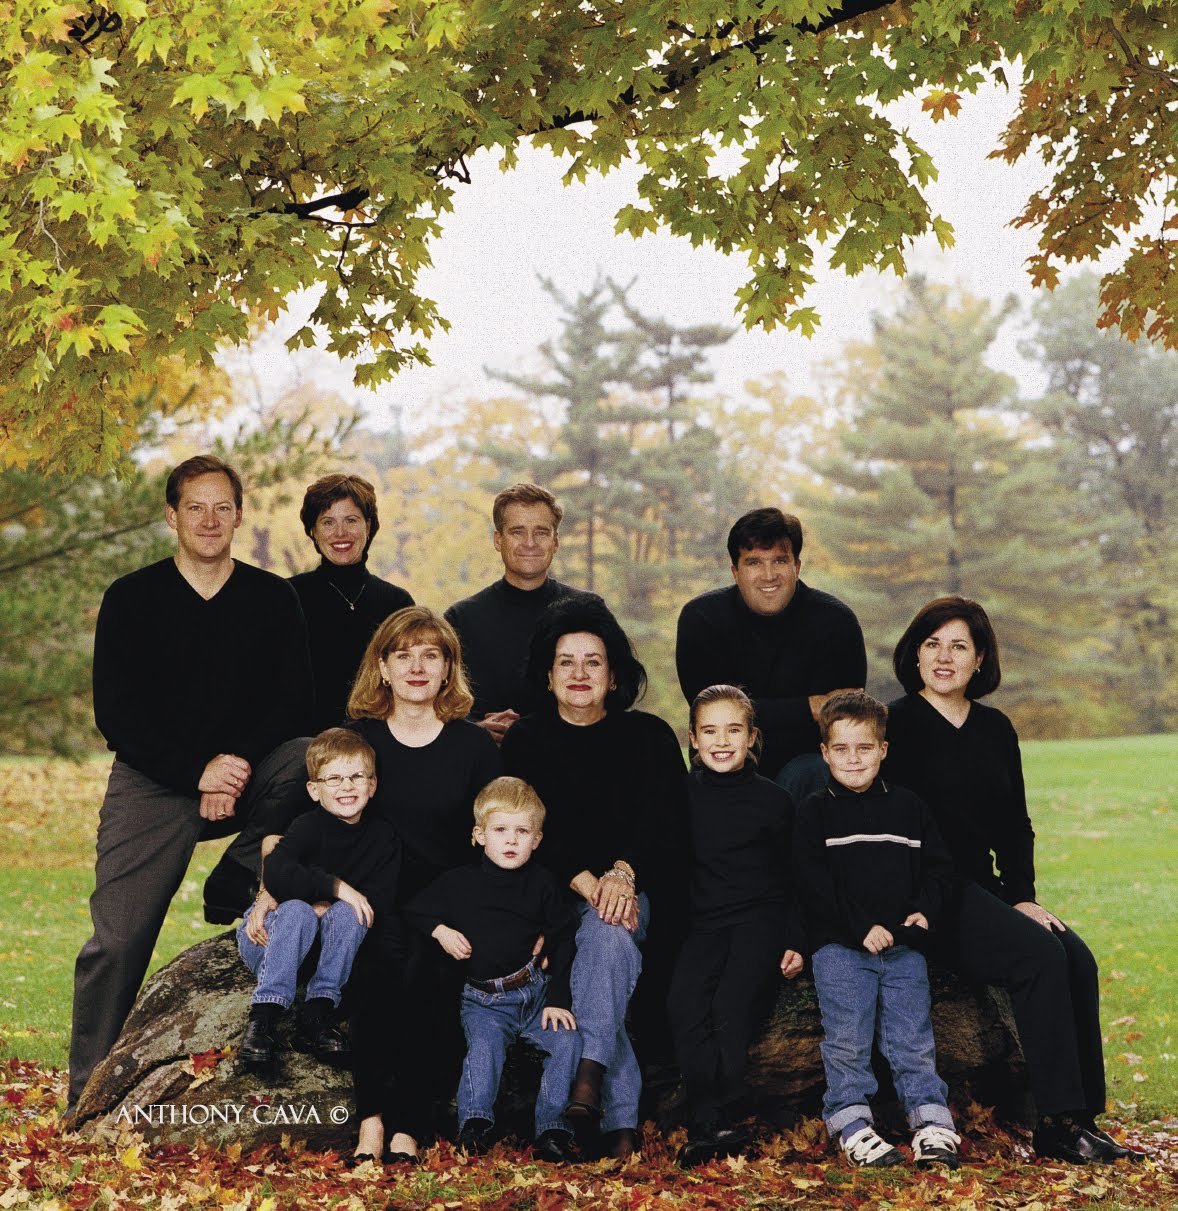 Outdoor Family Picture Pose Ideas http://portrait-photographer.blogspot.com/2010/05/adding-fill-light.html